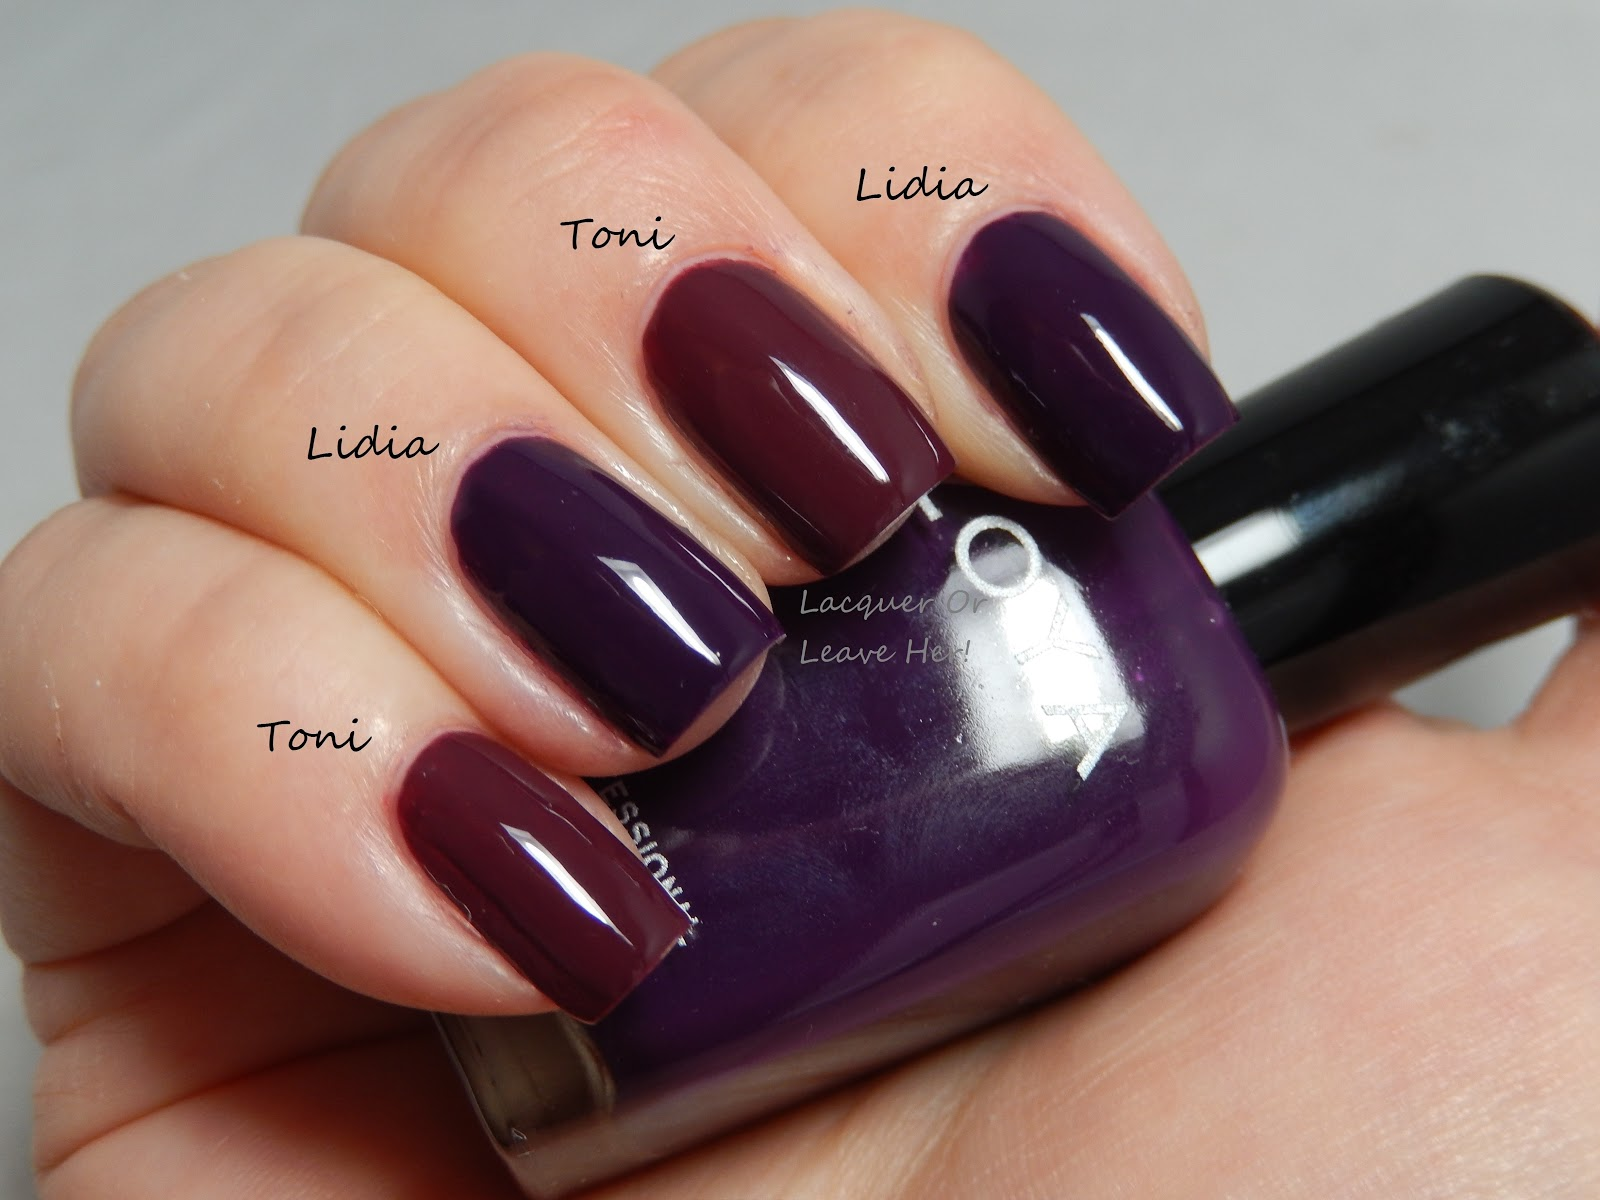 Lacquer or leave her comparison zoya purple cremes comparison of zoya lidia and zoya toni reheart Gallery